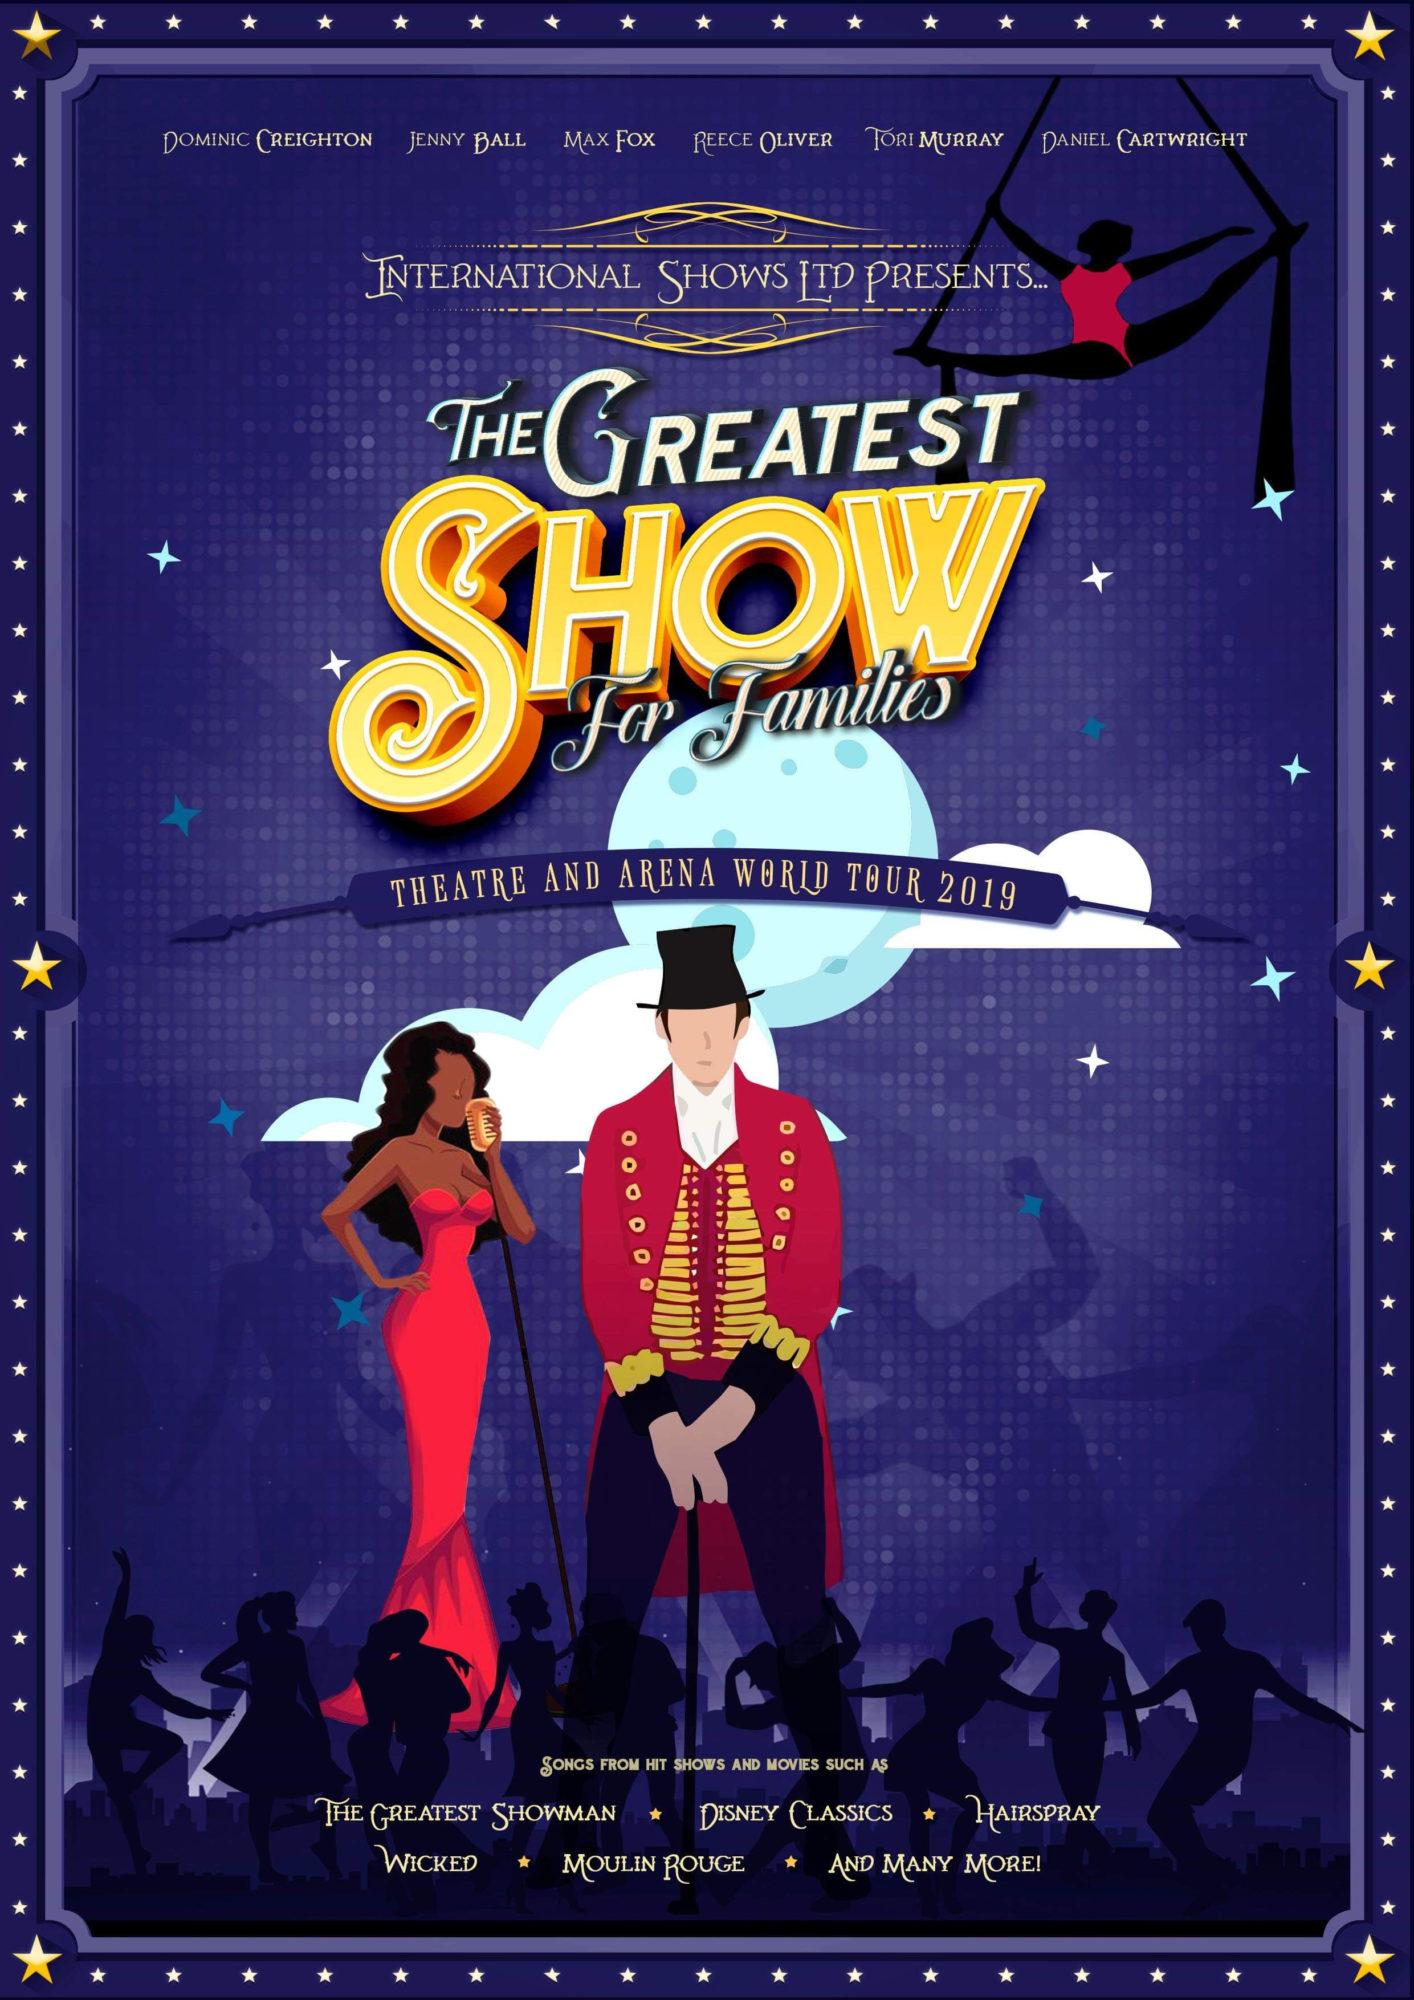 The Greatest Show for Families